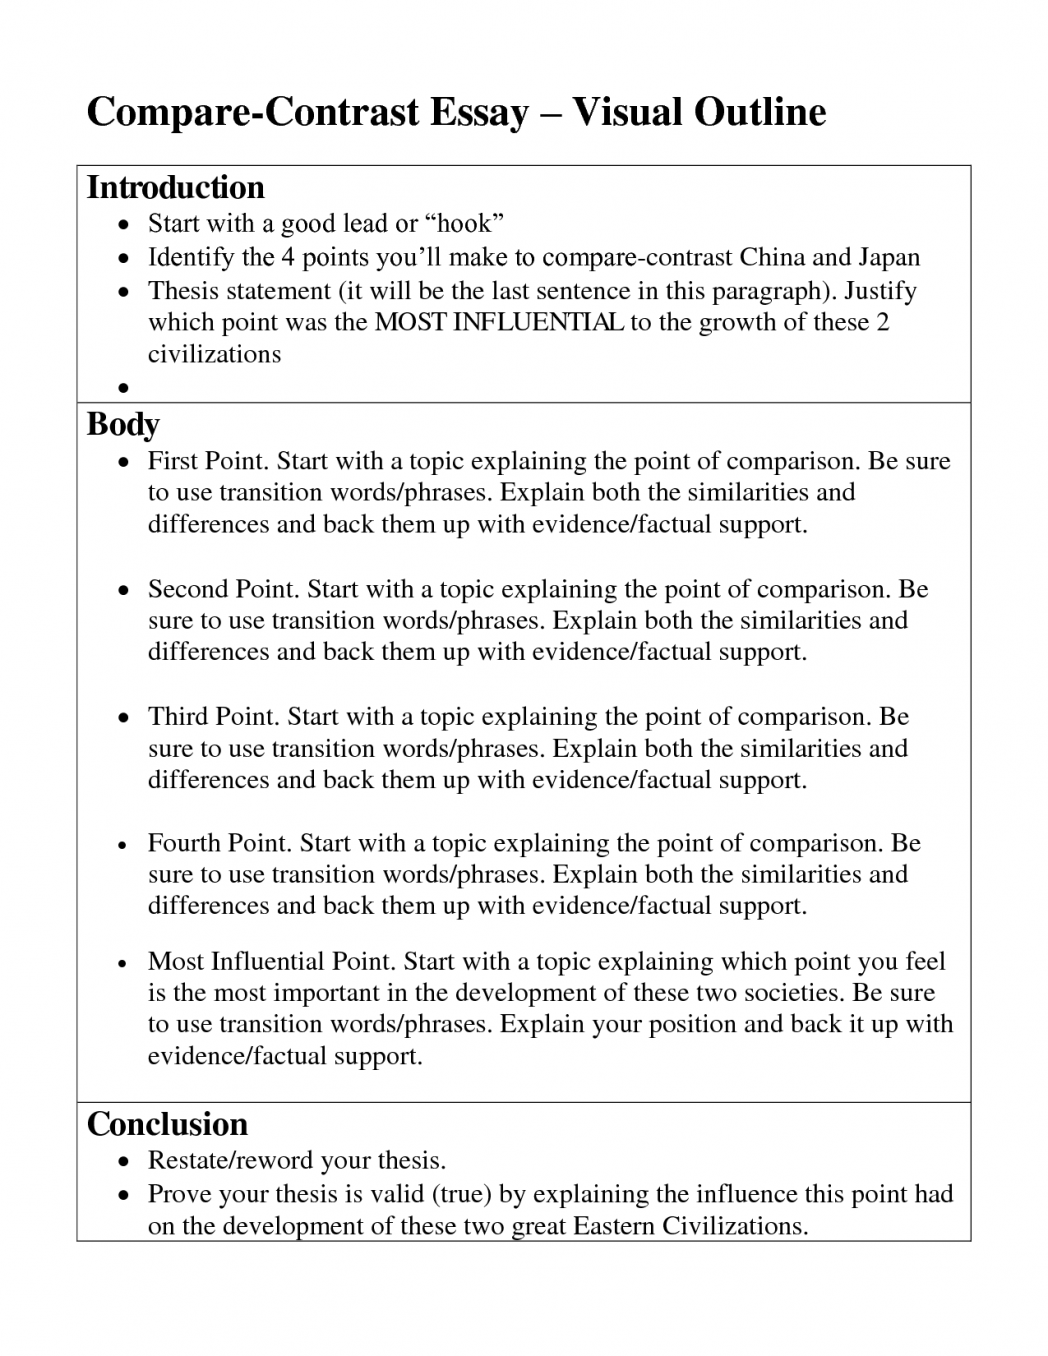 004 Compare And Contrast Essay Topics For High School Students English College Pdf Research Paper 1048x1356 Comparison Staggering Esl Examples Middle Full